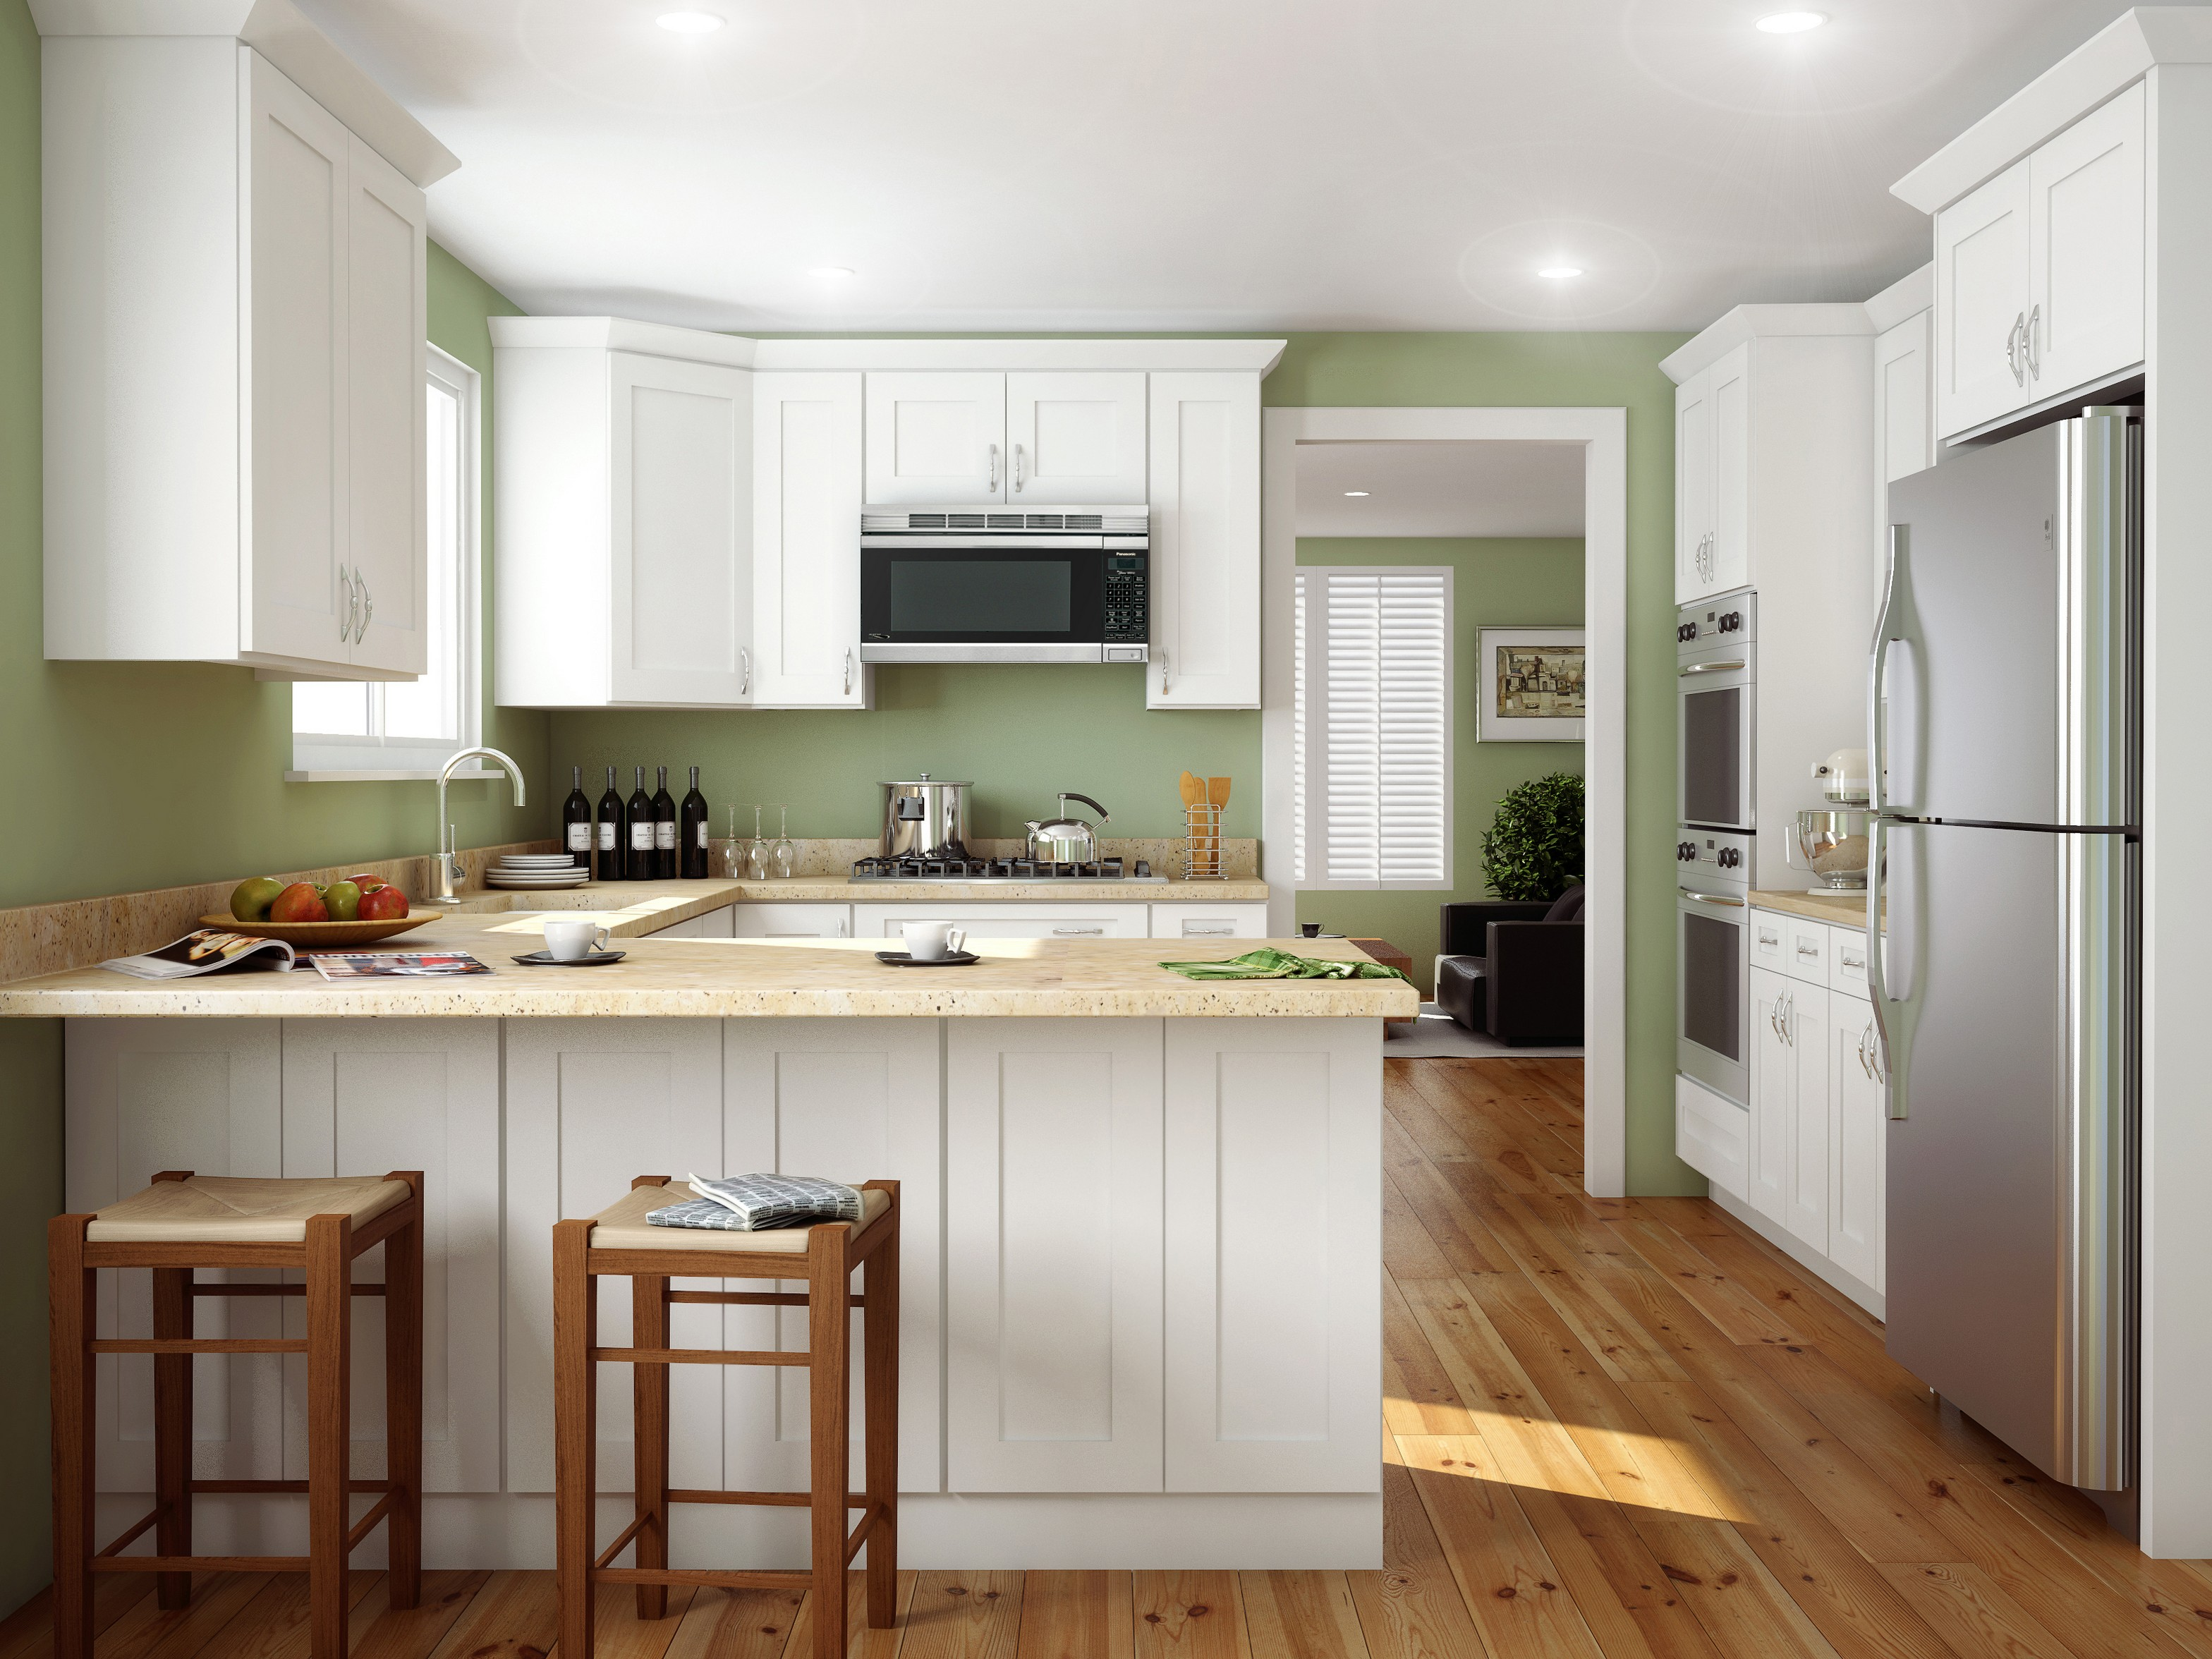 white kitchen cabinets resale value 7 kitchen remodeling tips for home sellers 28911